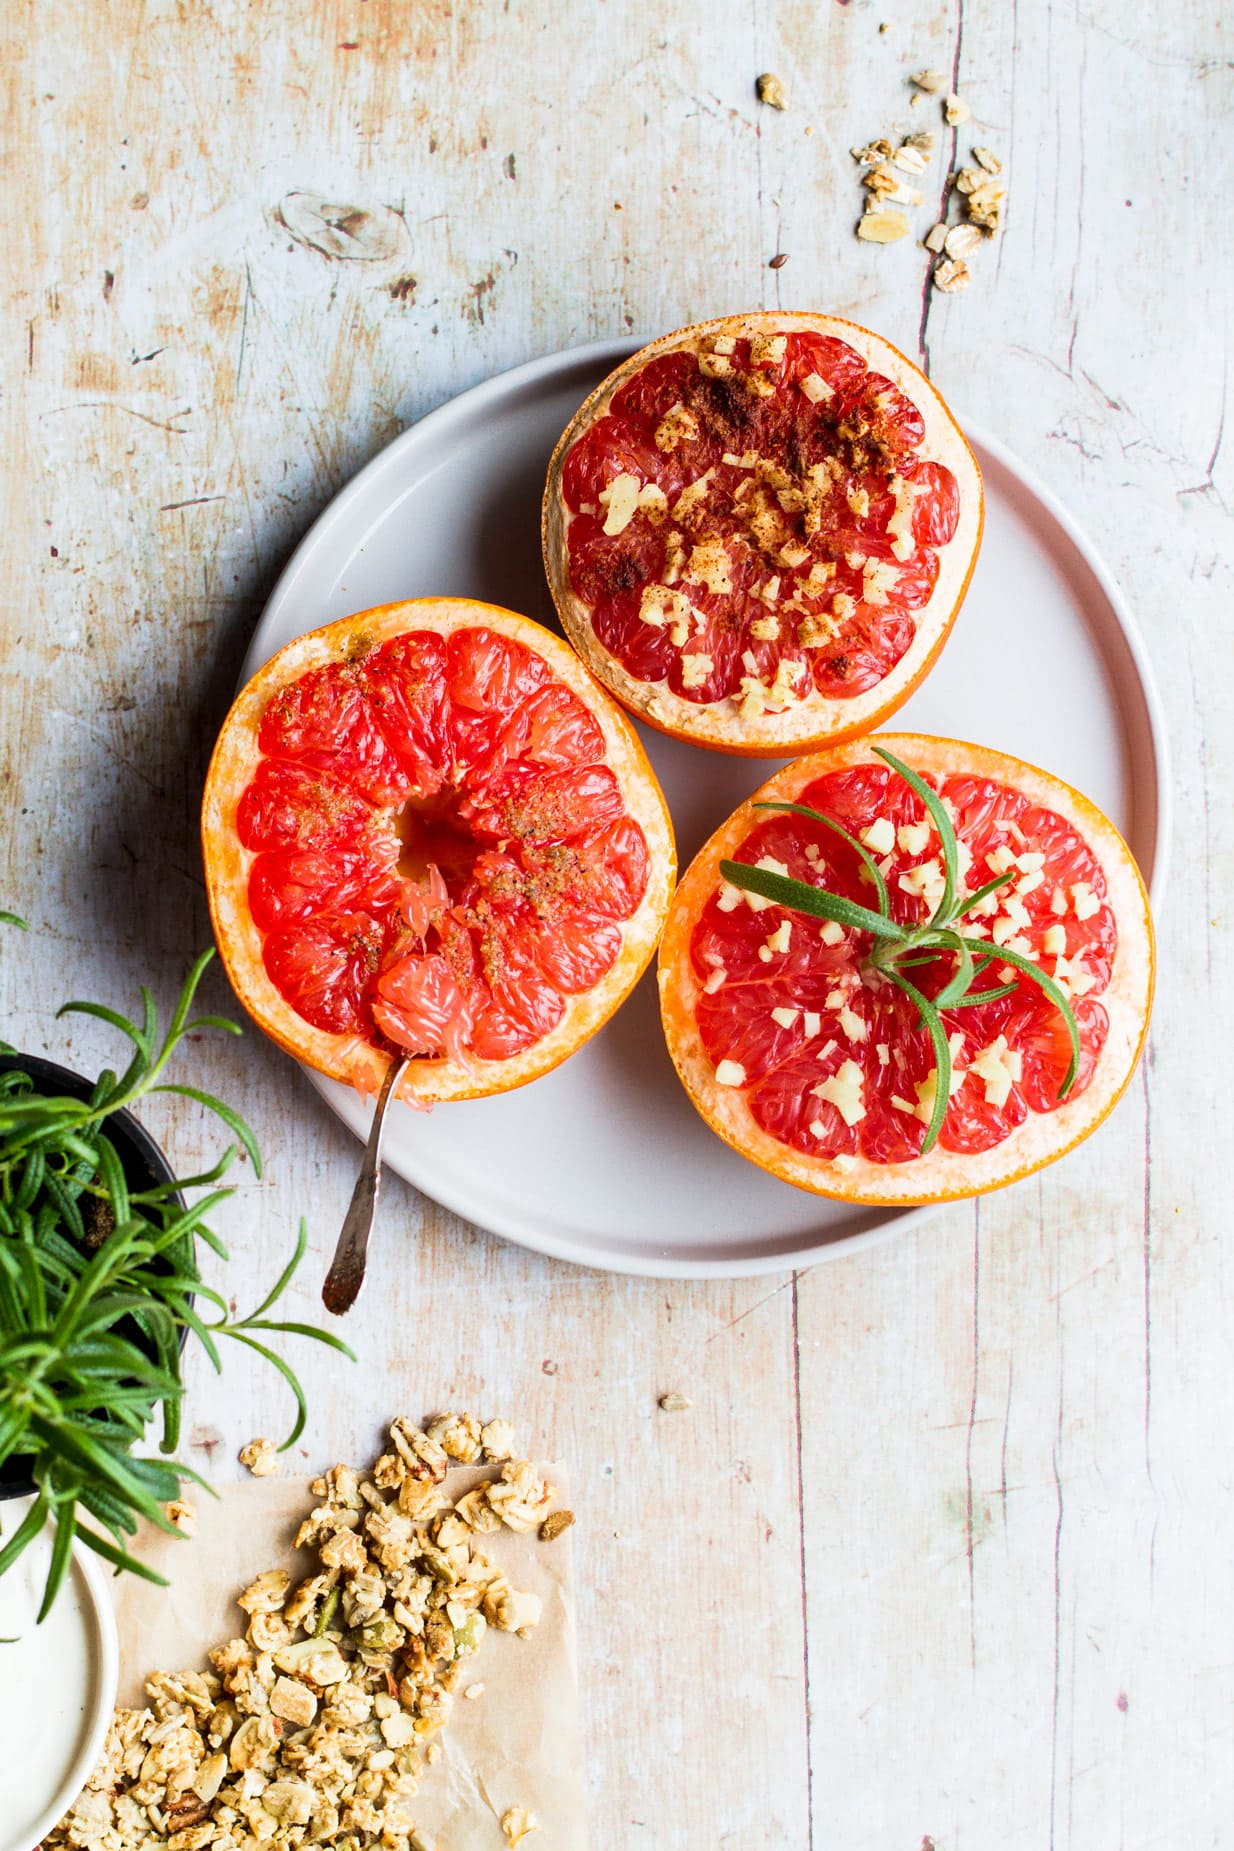 Three halves of baked grapefruit on a plate.